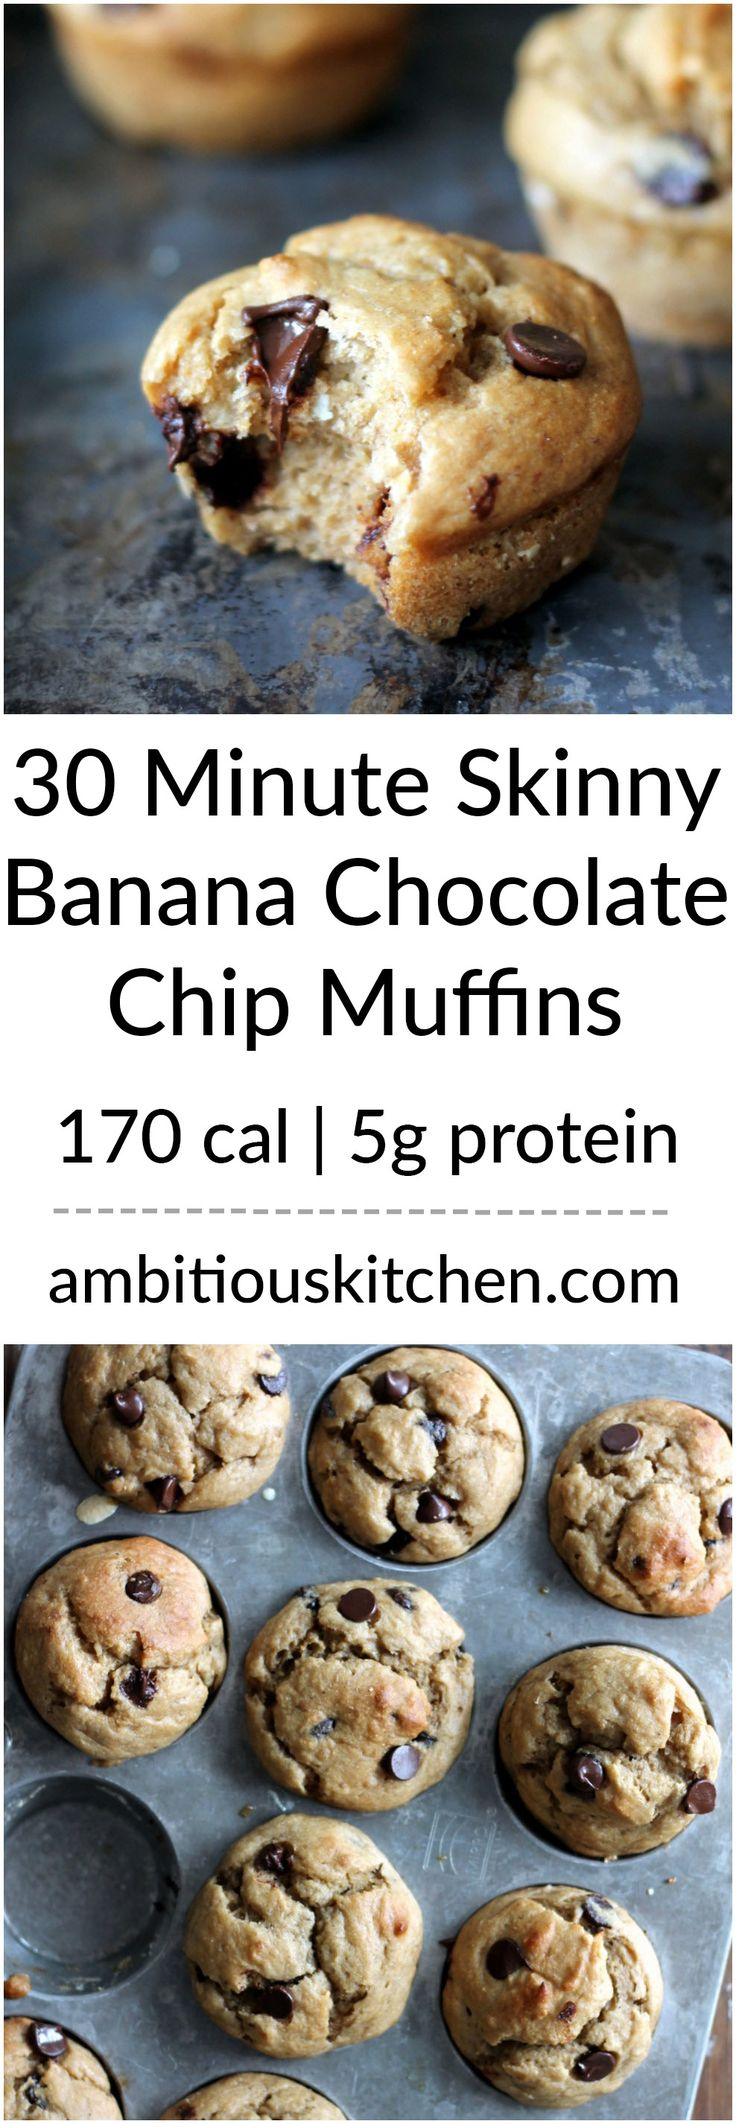 Almost fat free, healthy banana muffins with chocolate chips for a little indulgence. The greek yogurt adds protein and keeps the muffins moist. You'll love these!